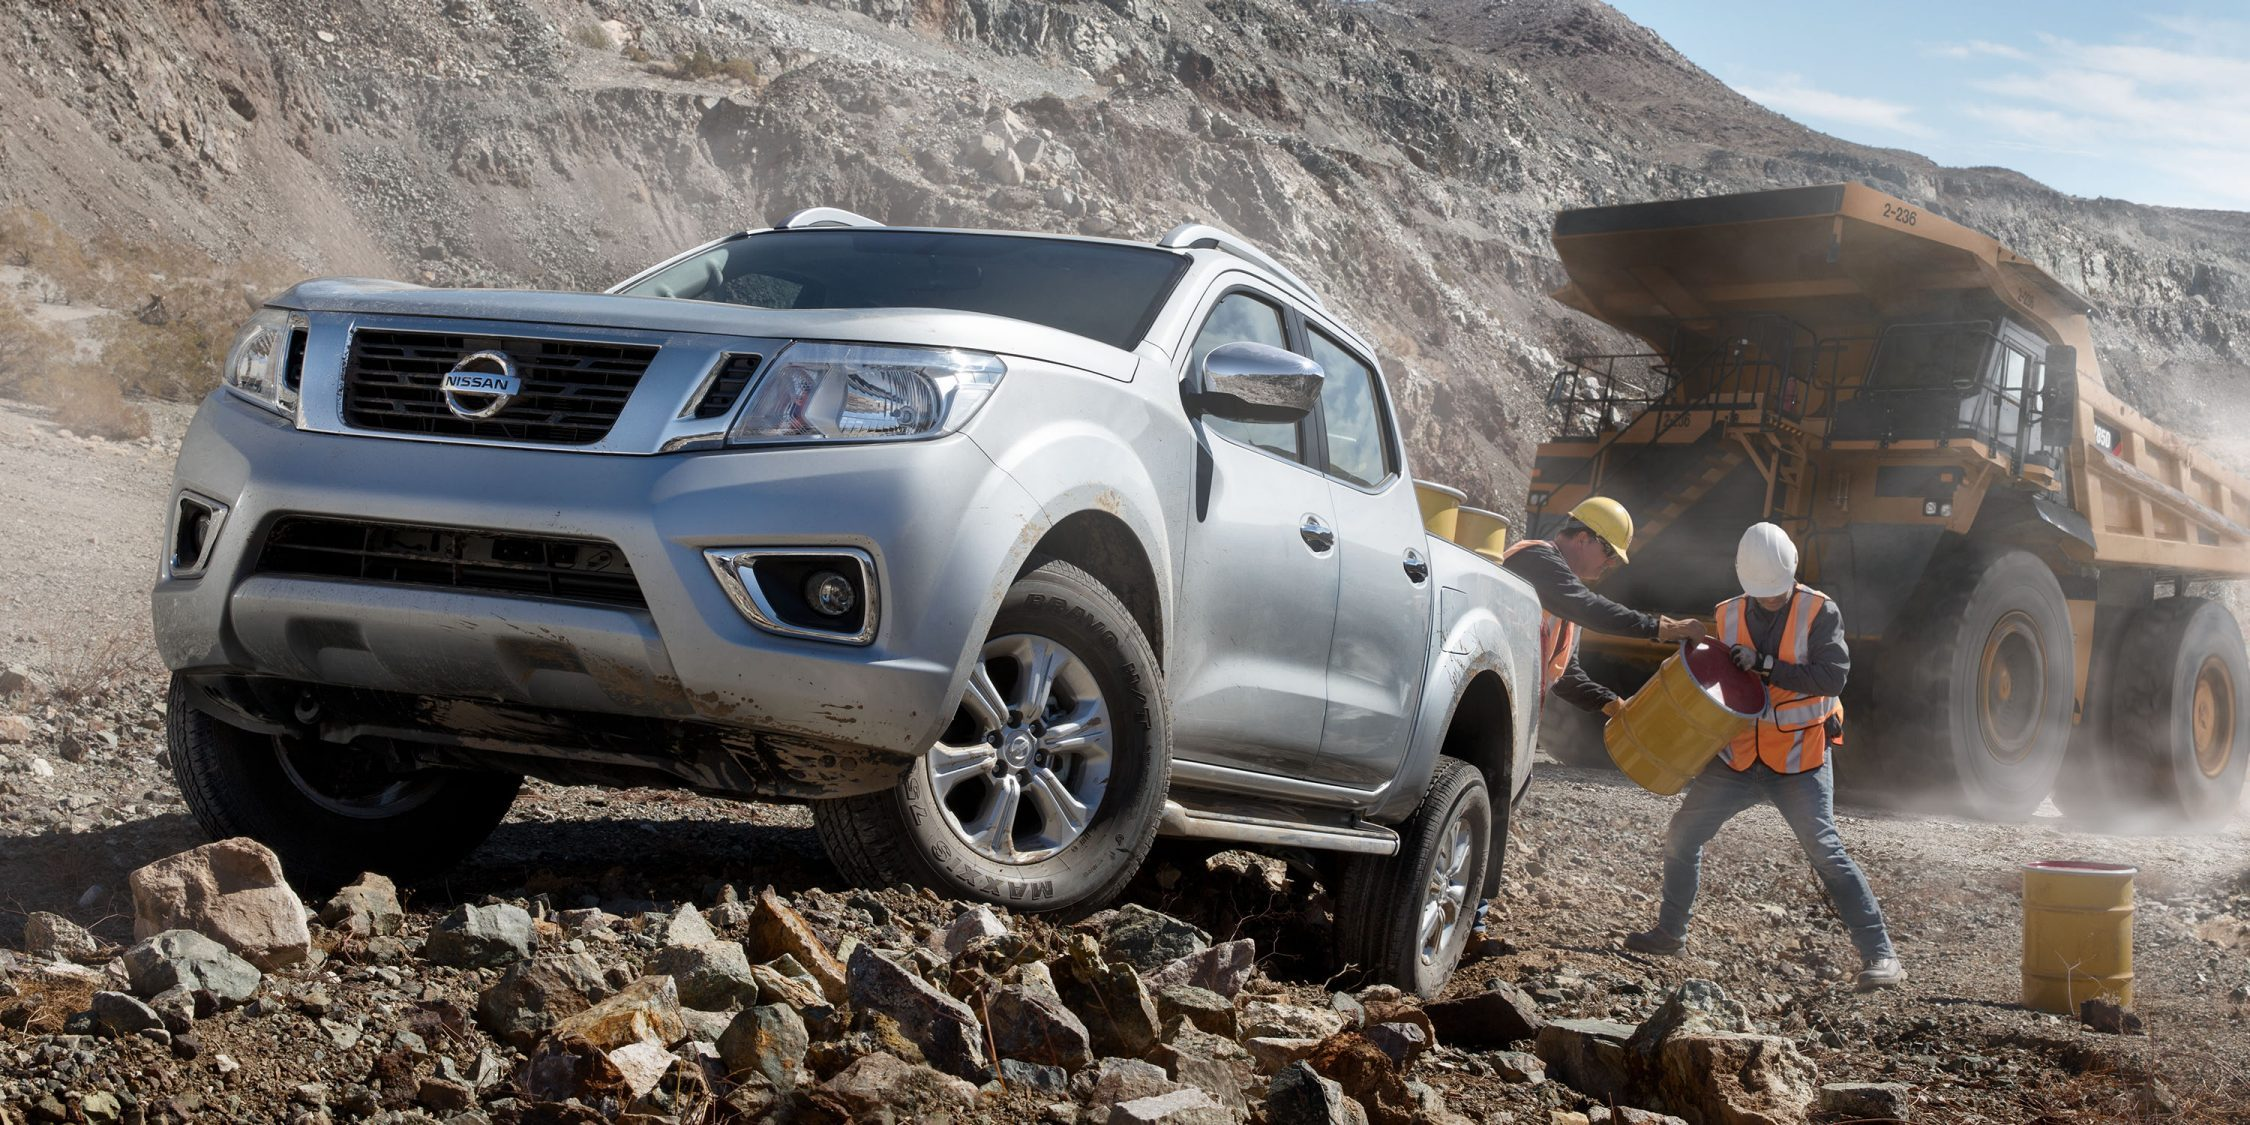 Nissan Navara parked on rocky terrain with workers and large equipment in the background